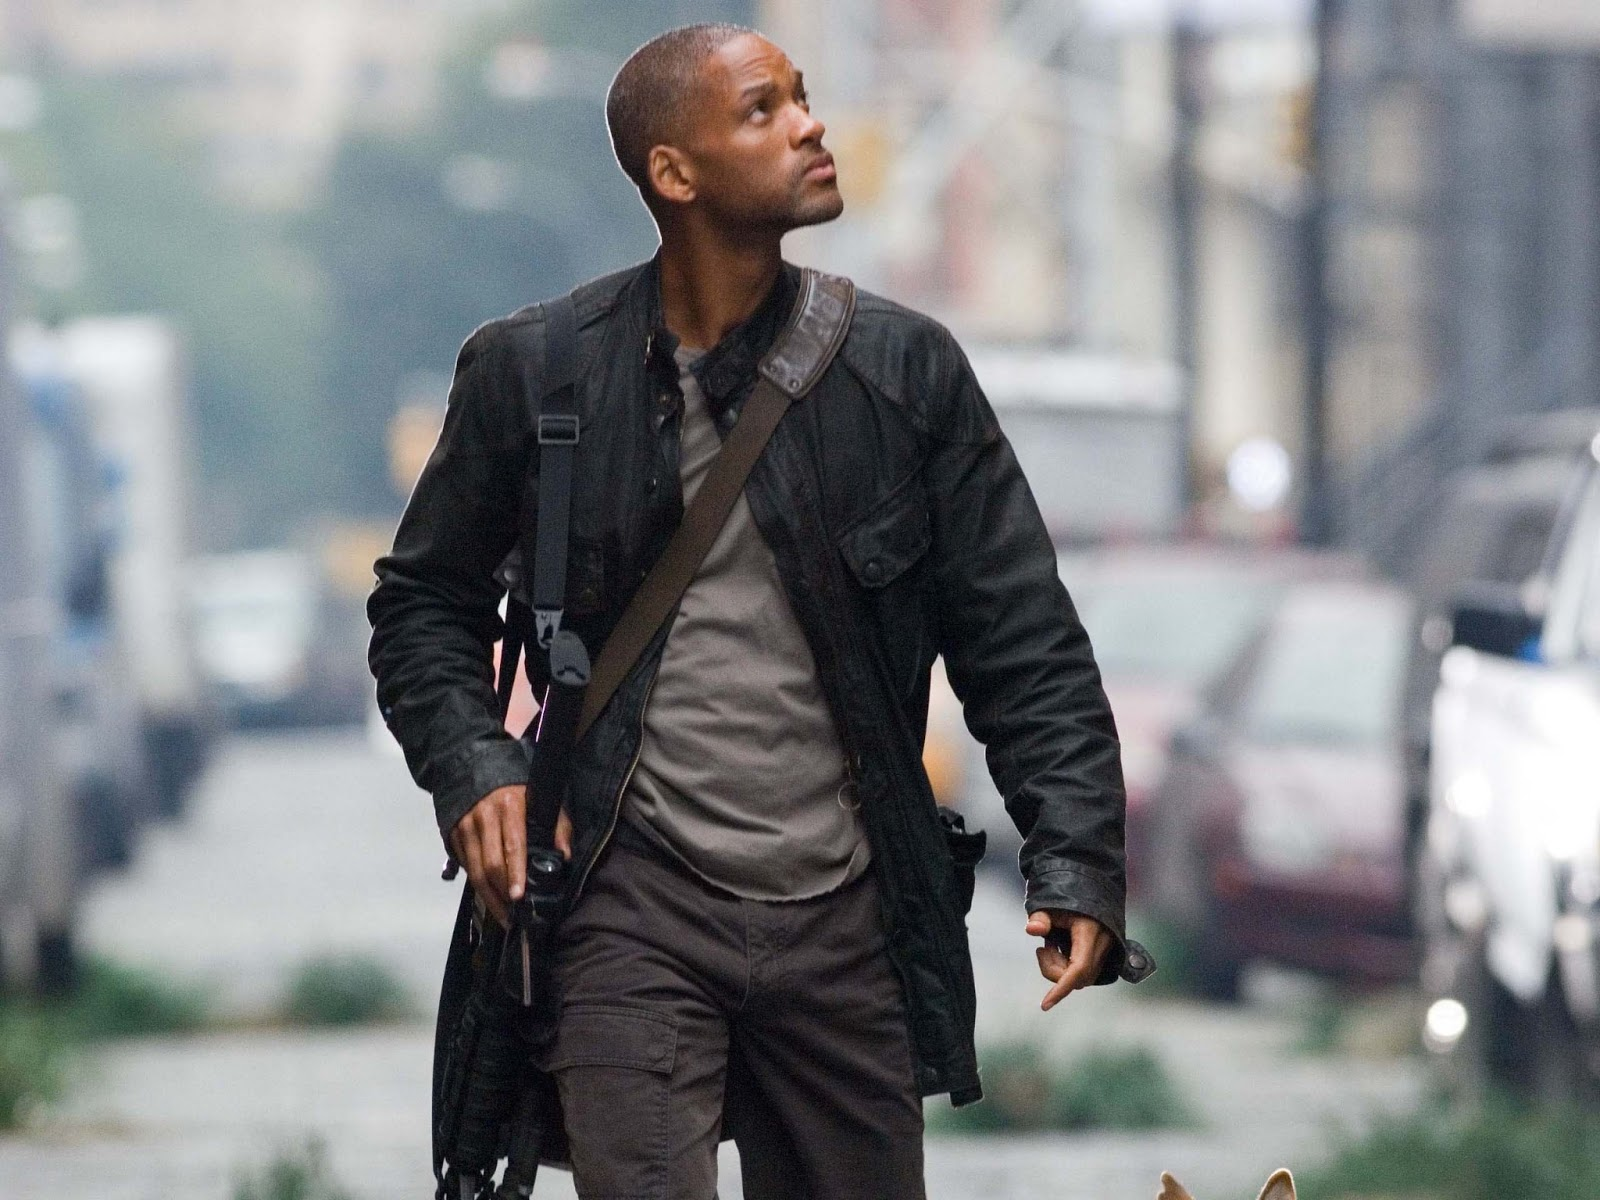 Like Every Body: Will Smith hd Wallpapers 2013